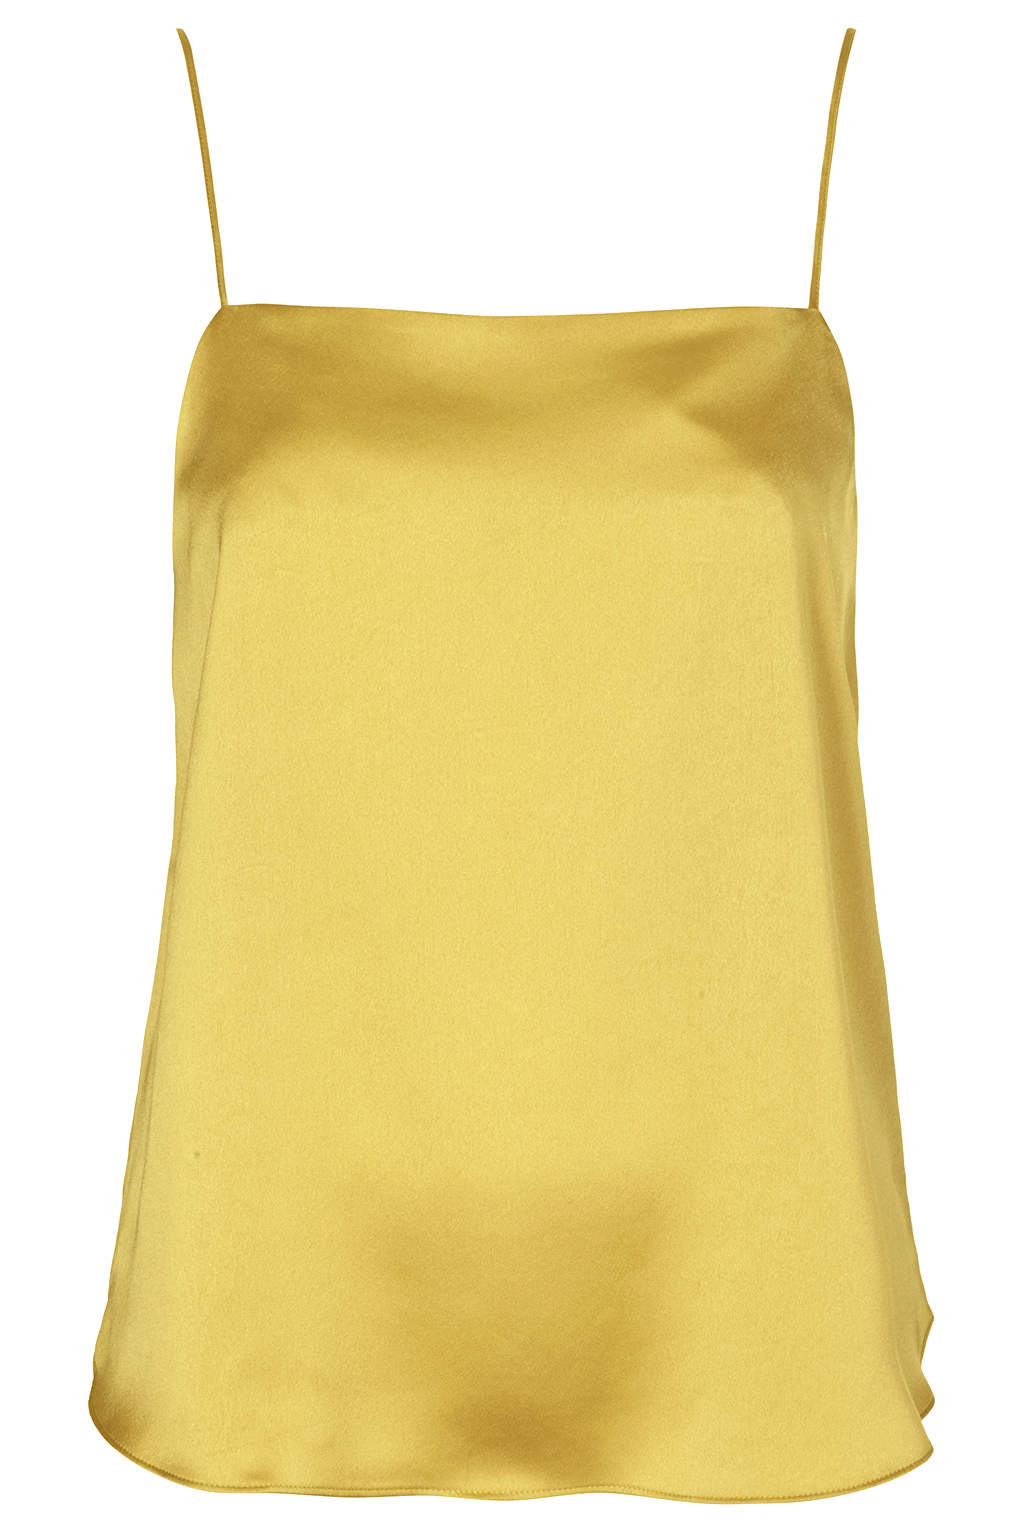 bc83efa2518c1 TOPSHOP Satin Straight Neck Cami Top in Yellow - Lyst